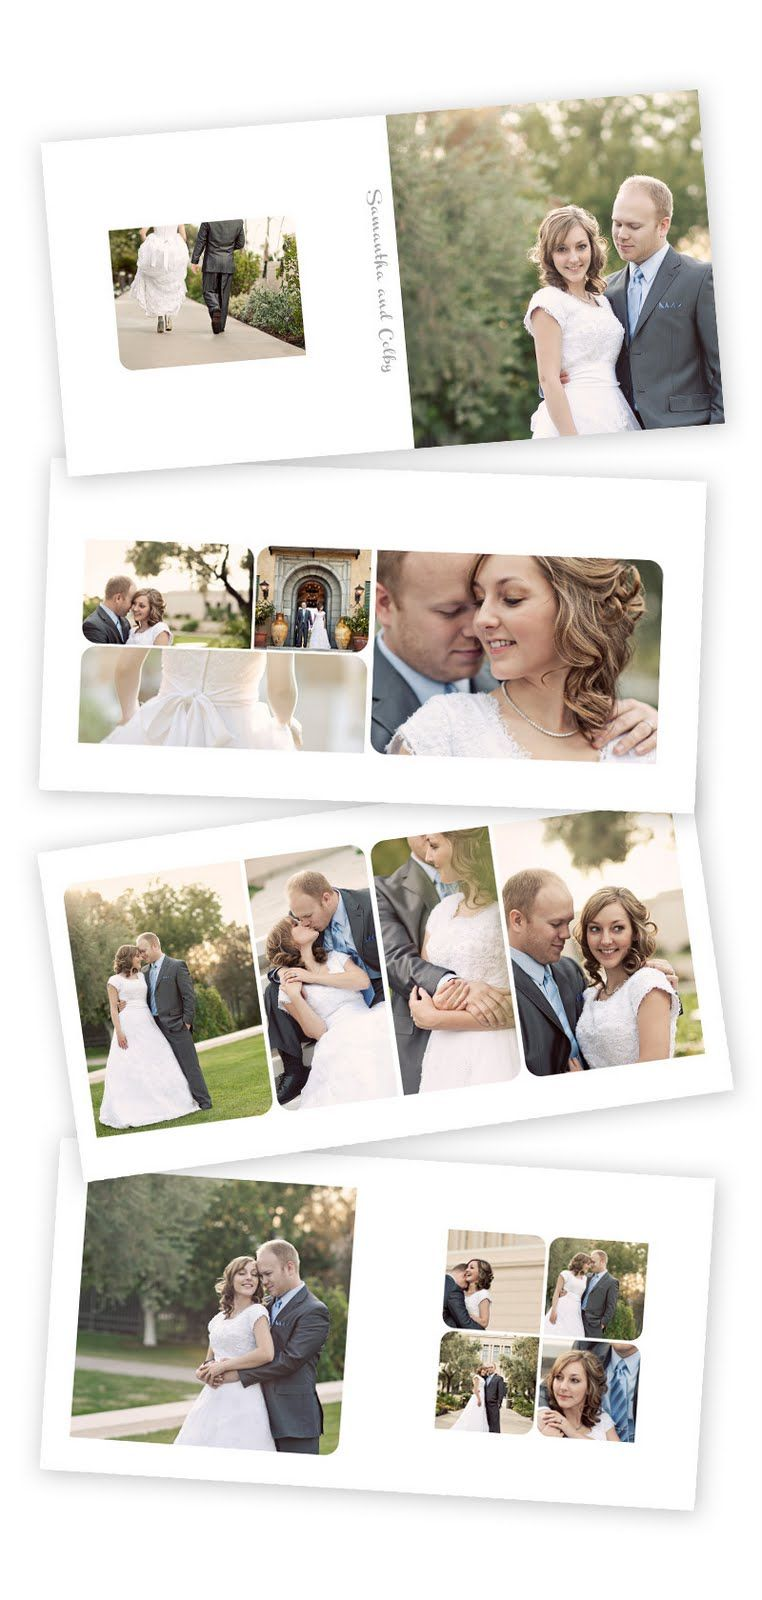 Pin By Andrea Nathania On Interests Wedding Album Layout Photobook Design Photobook Layout